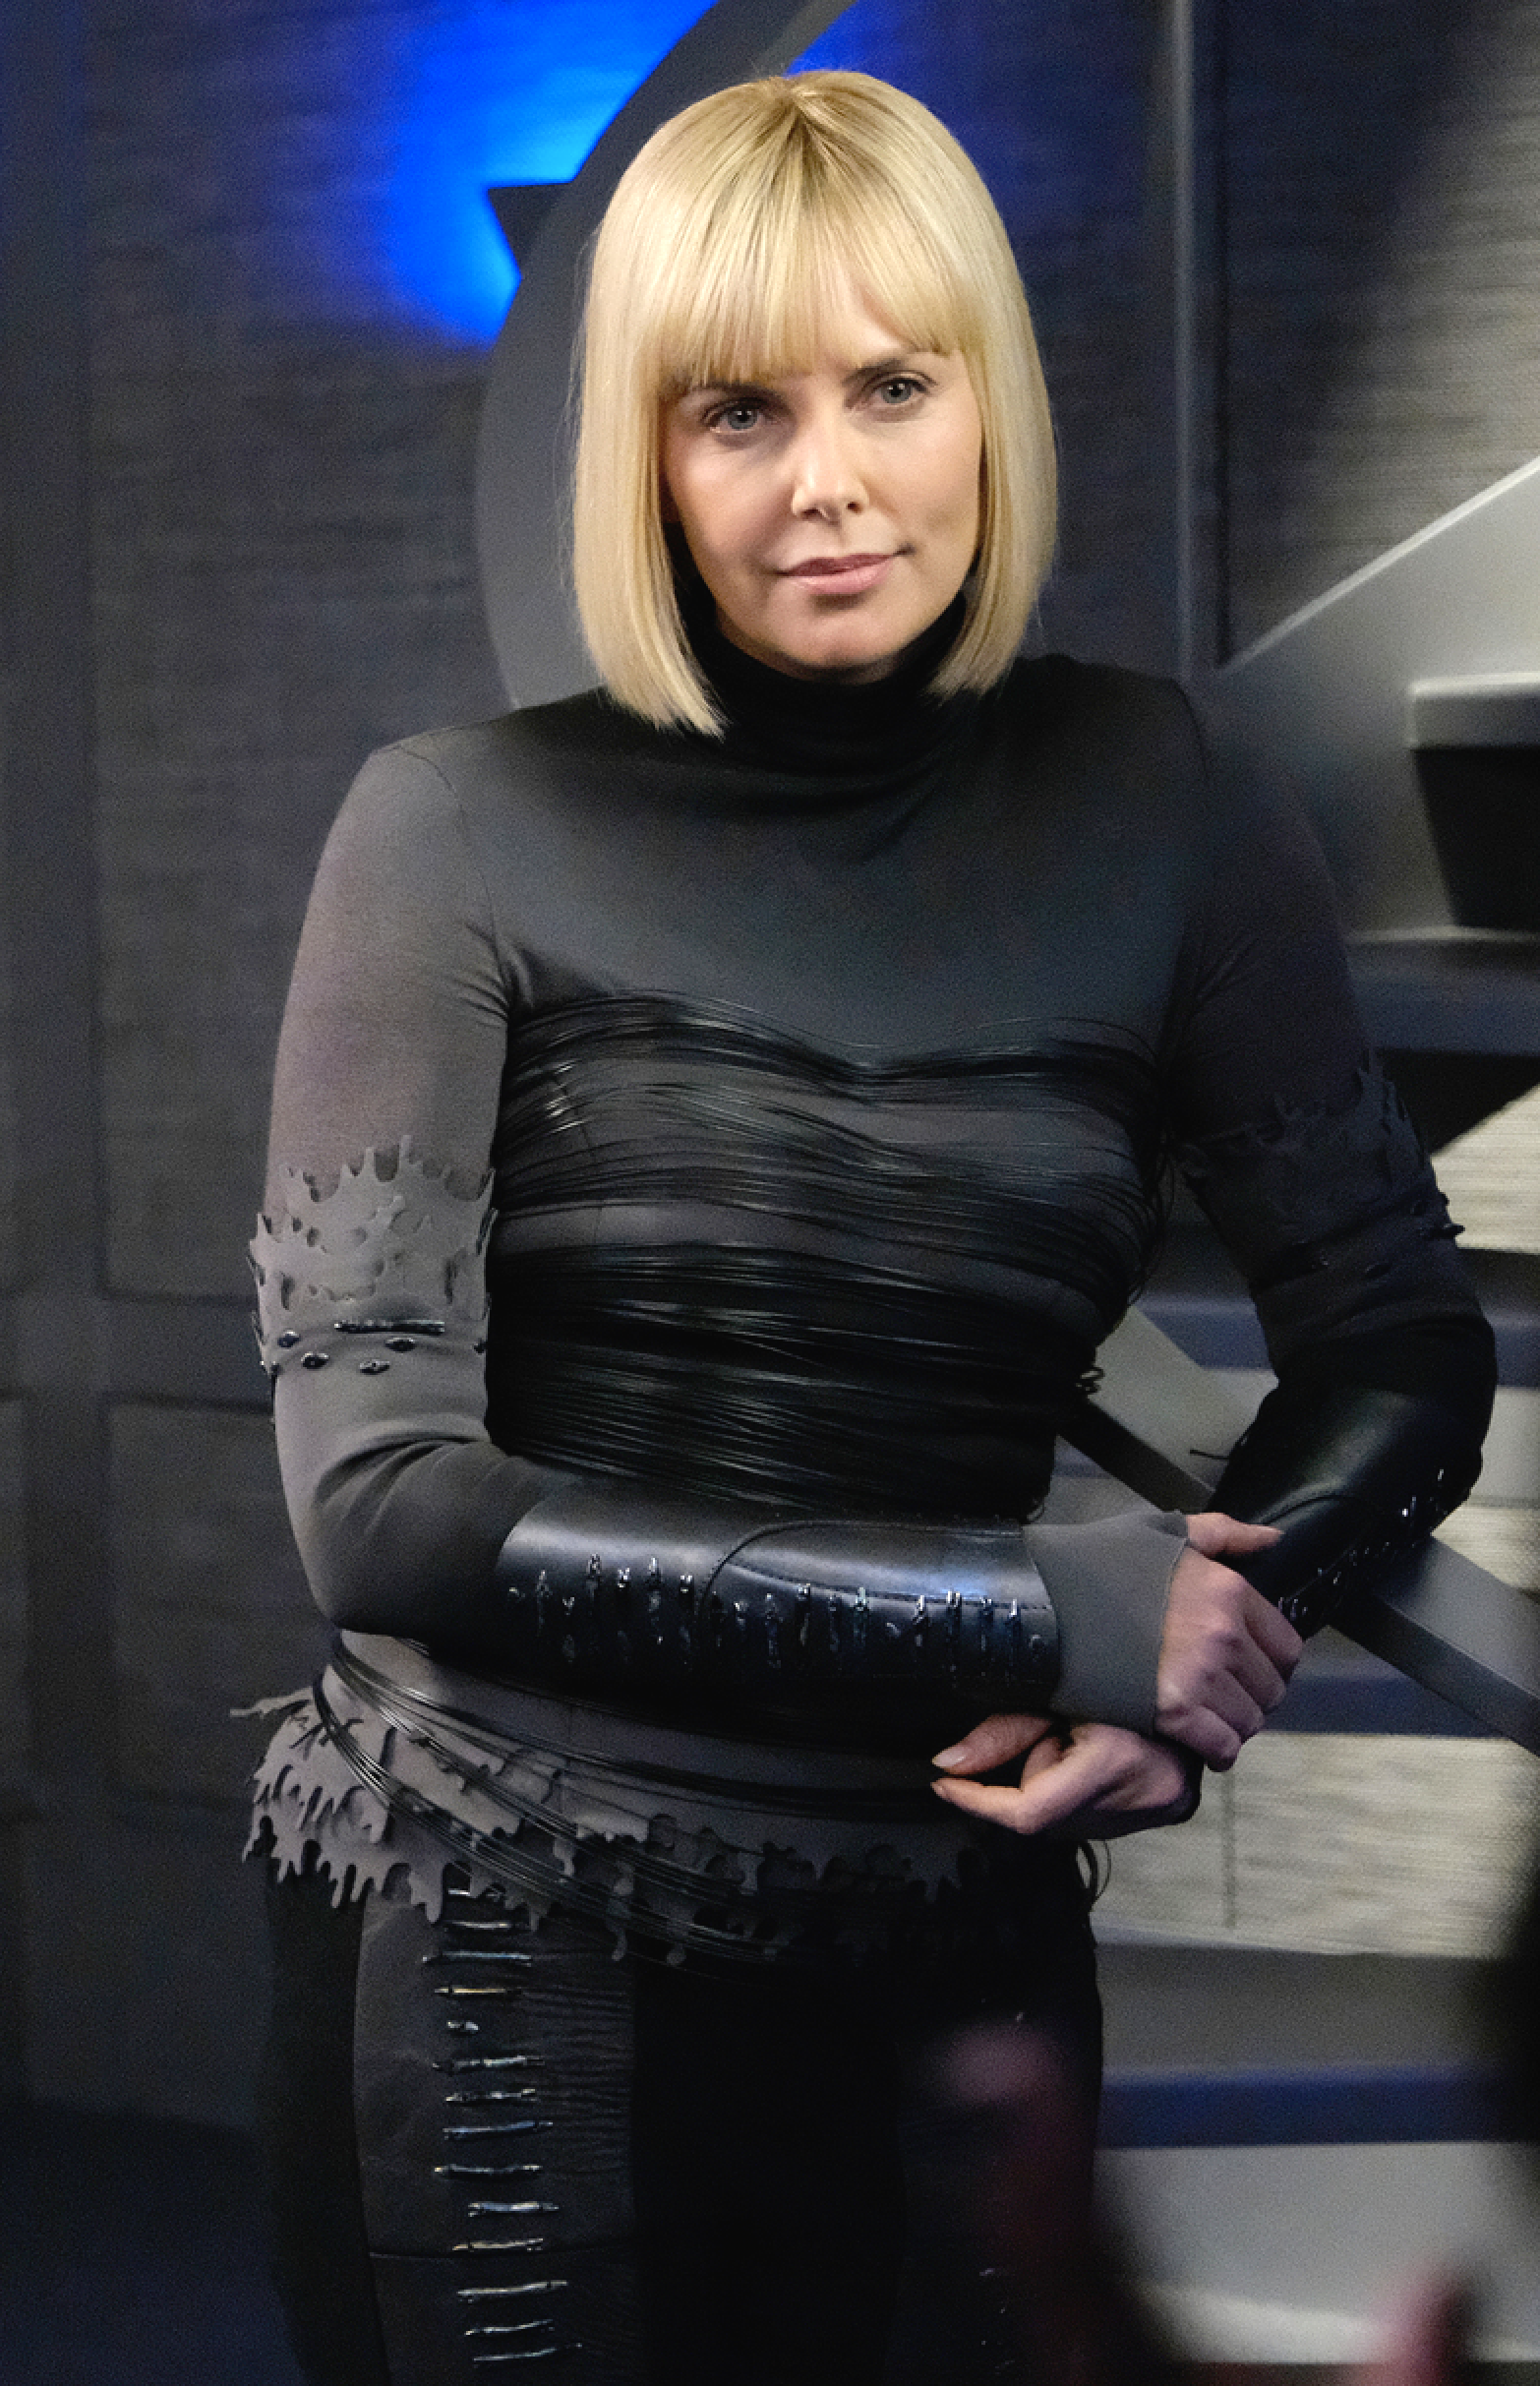 The Orville Ep. 105 Pria, Charlize Theron, Neoprene laser cut top ...